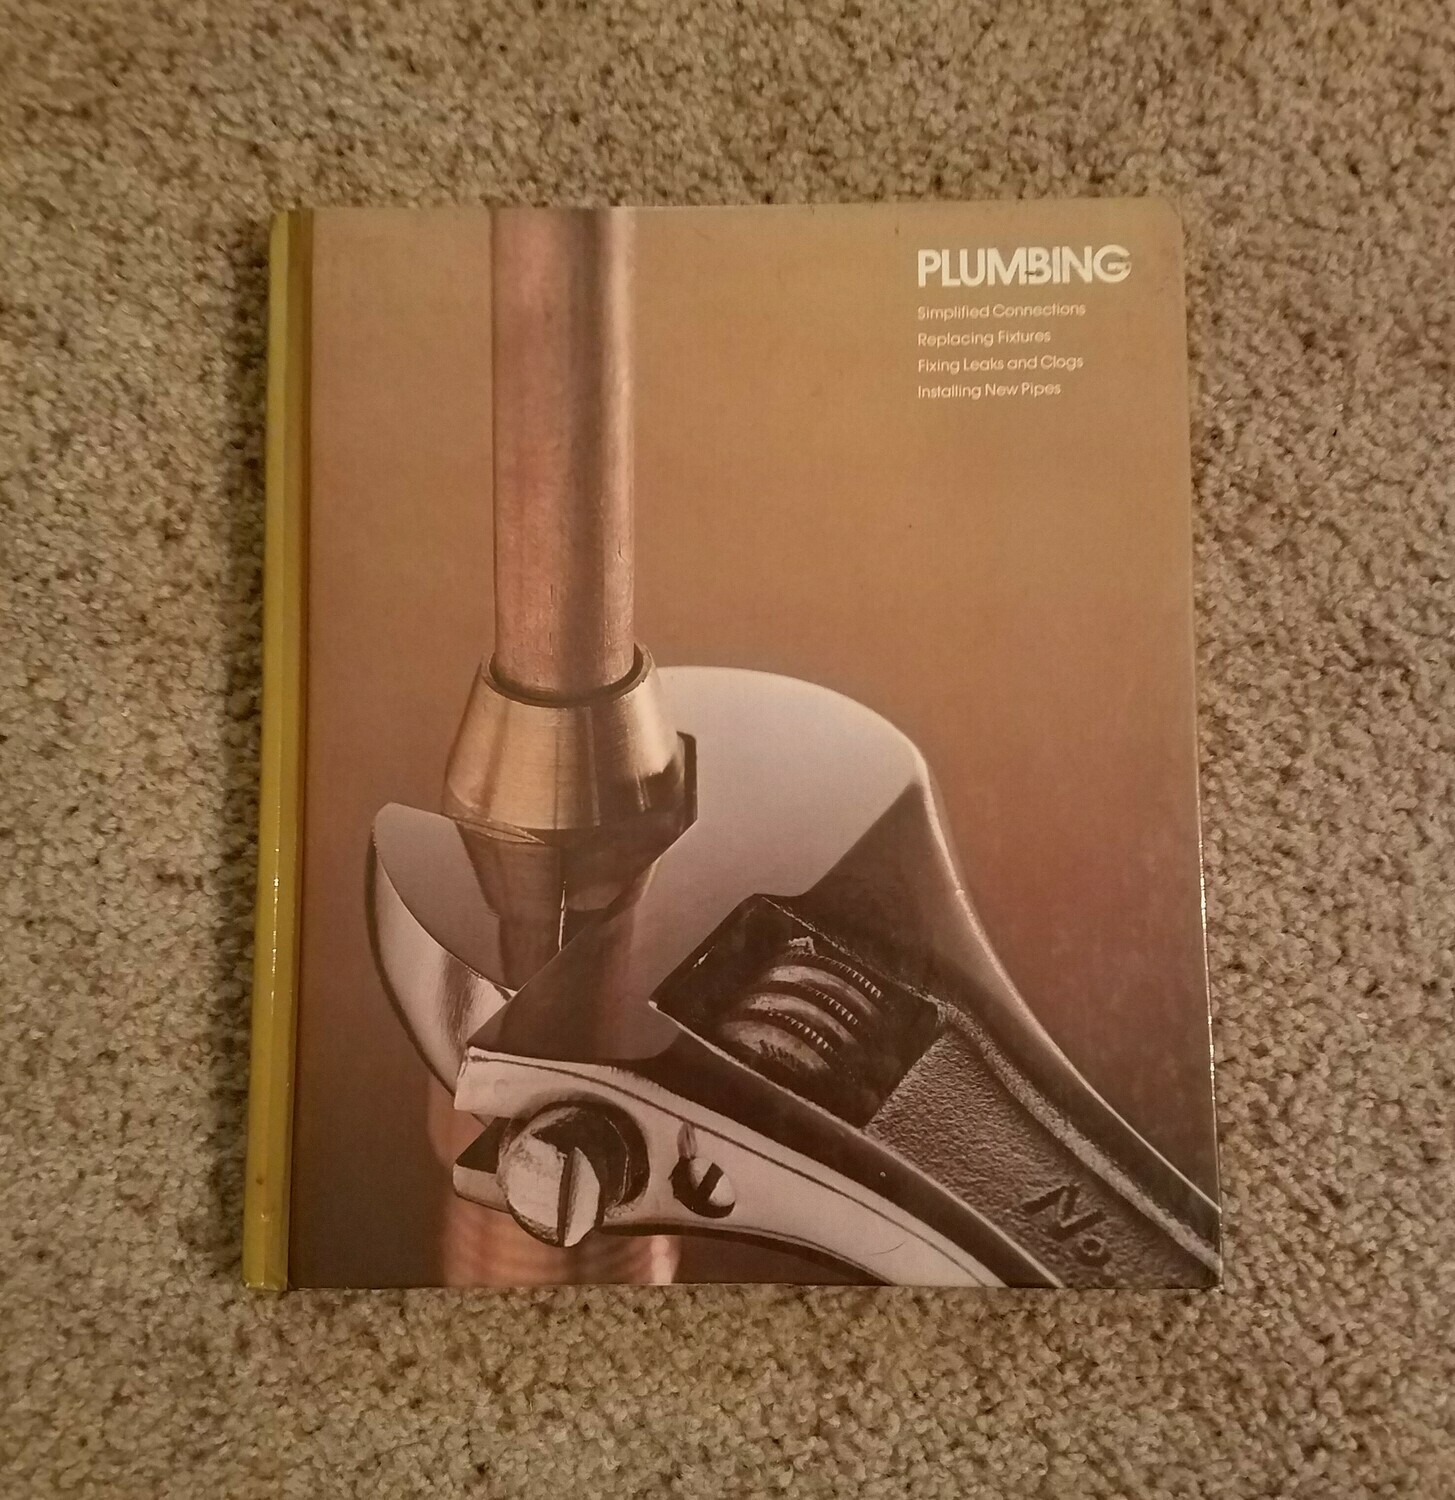 Plumbing by Editors of Time-Life Books